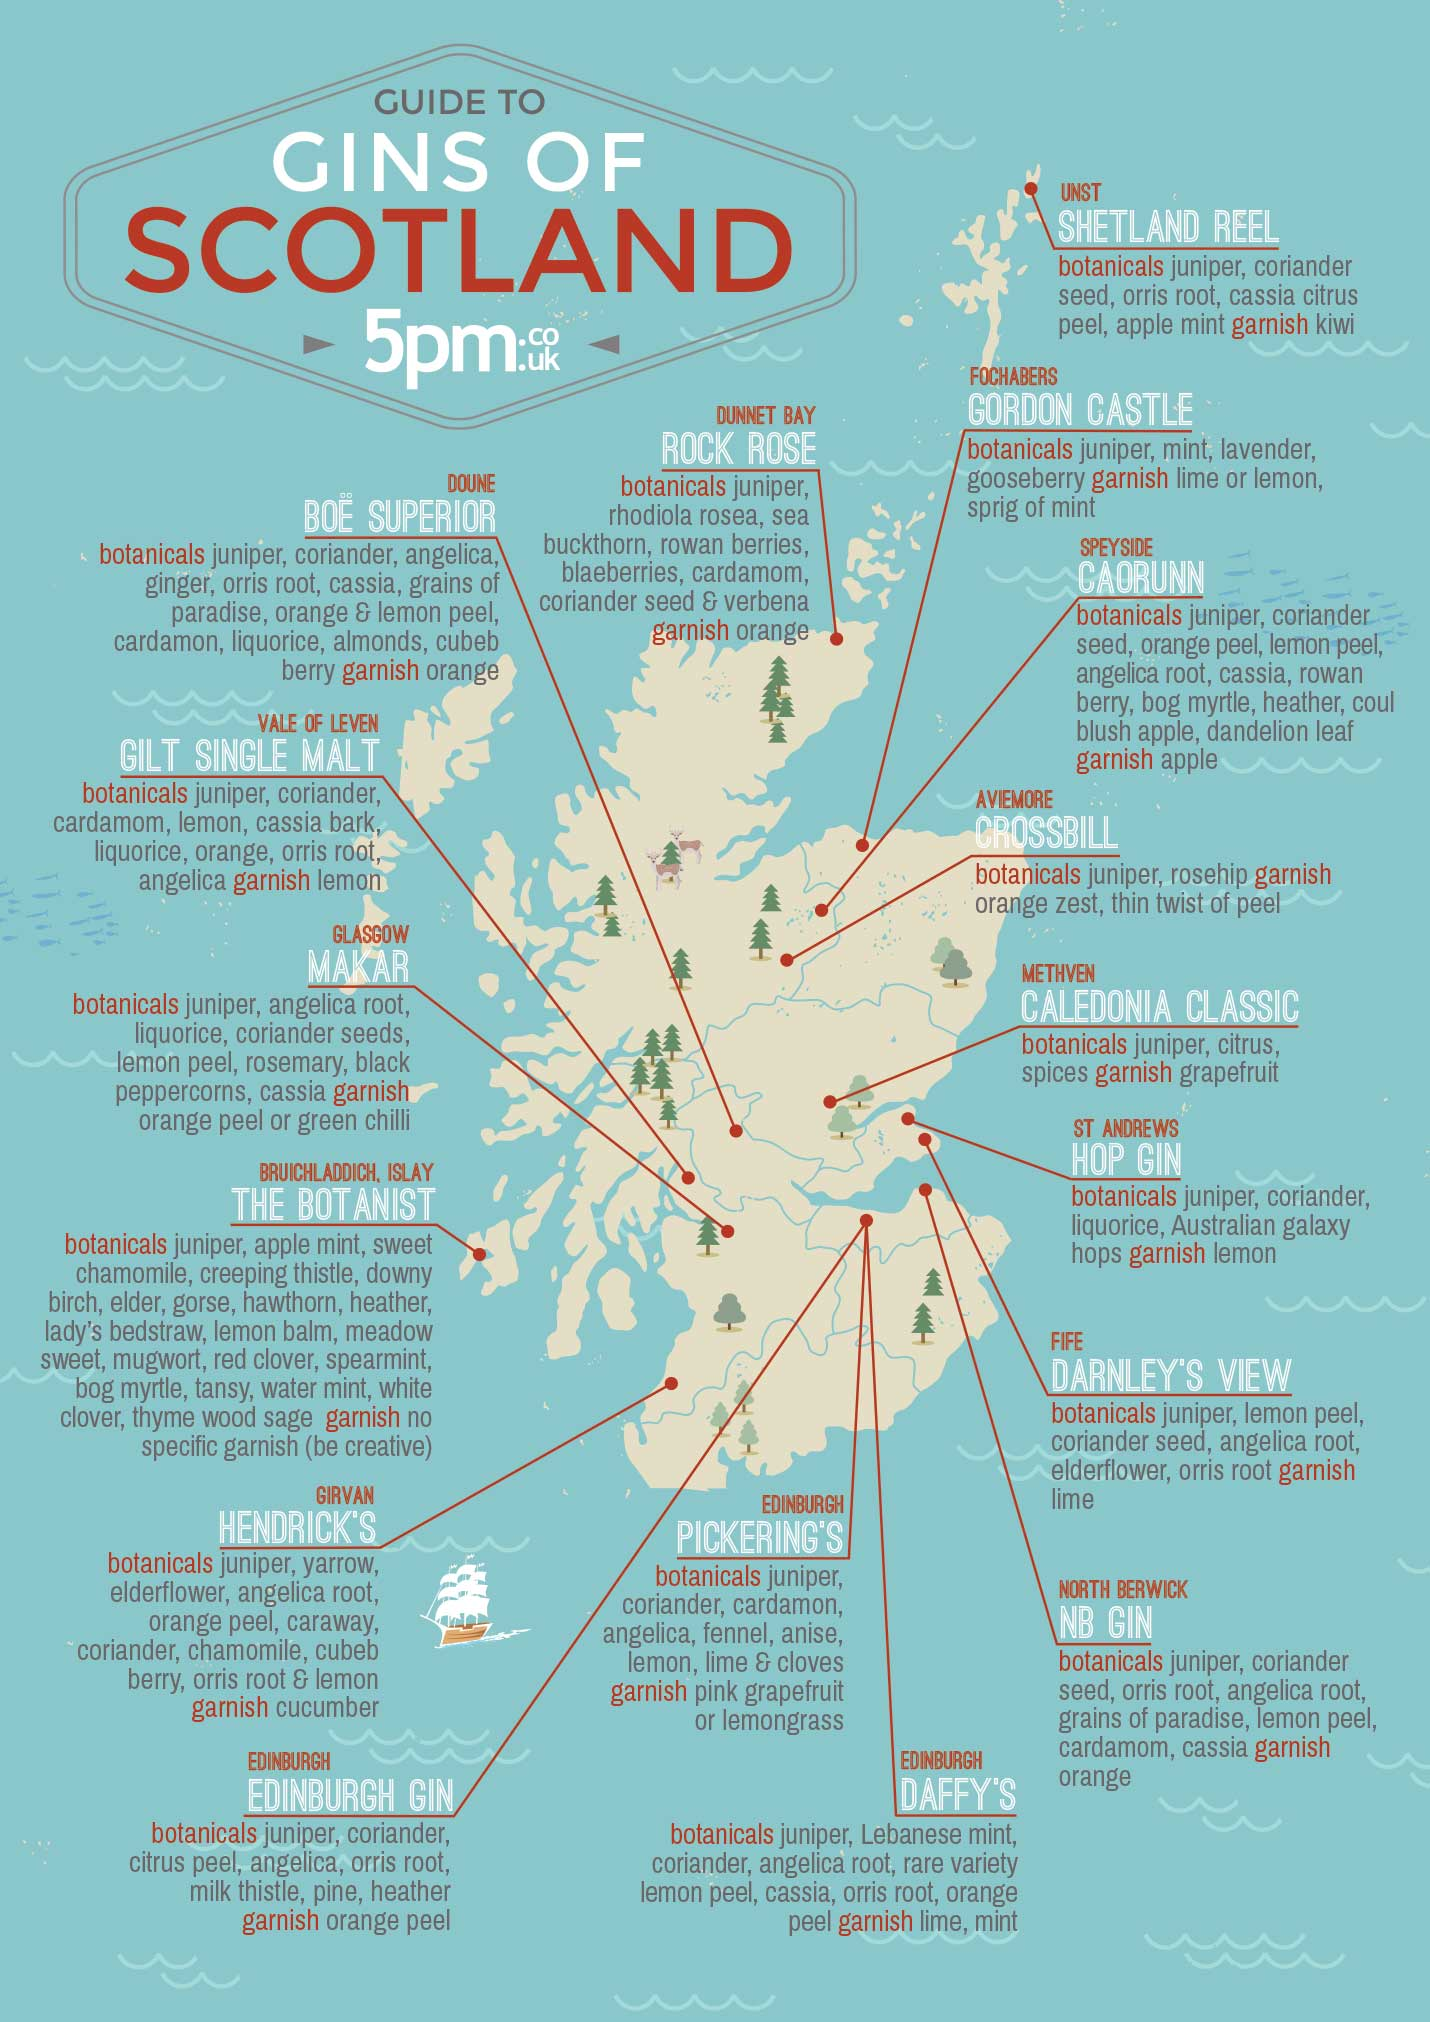 A Guide To The Gins Of Scotland by 5pm.co.uk